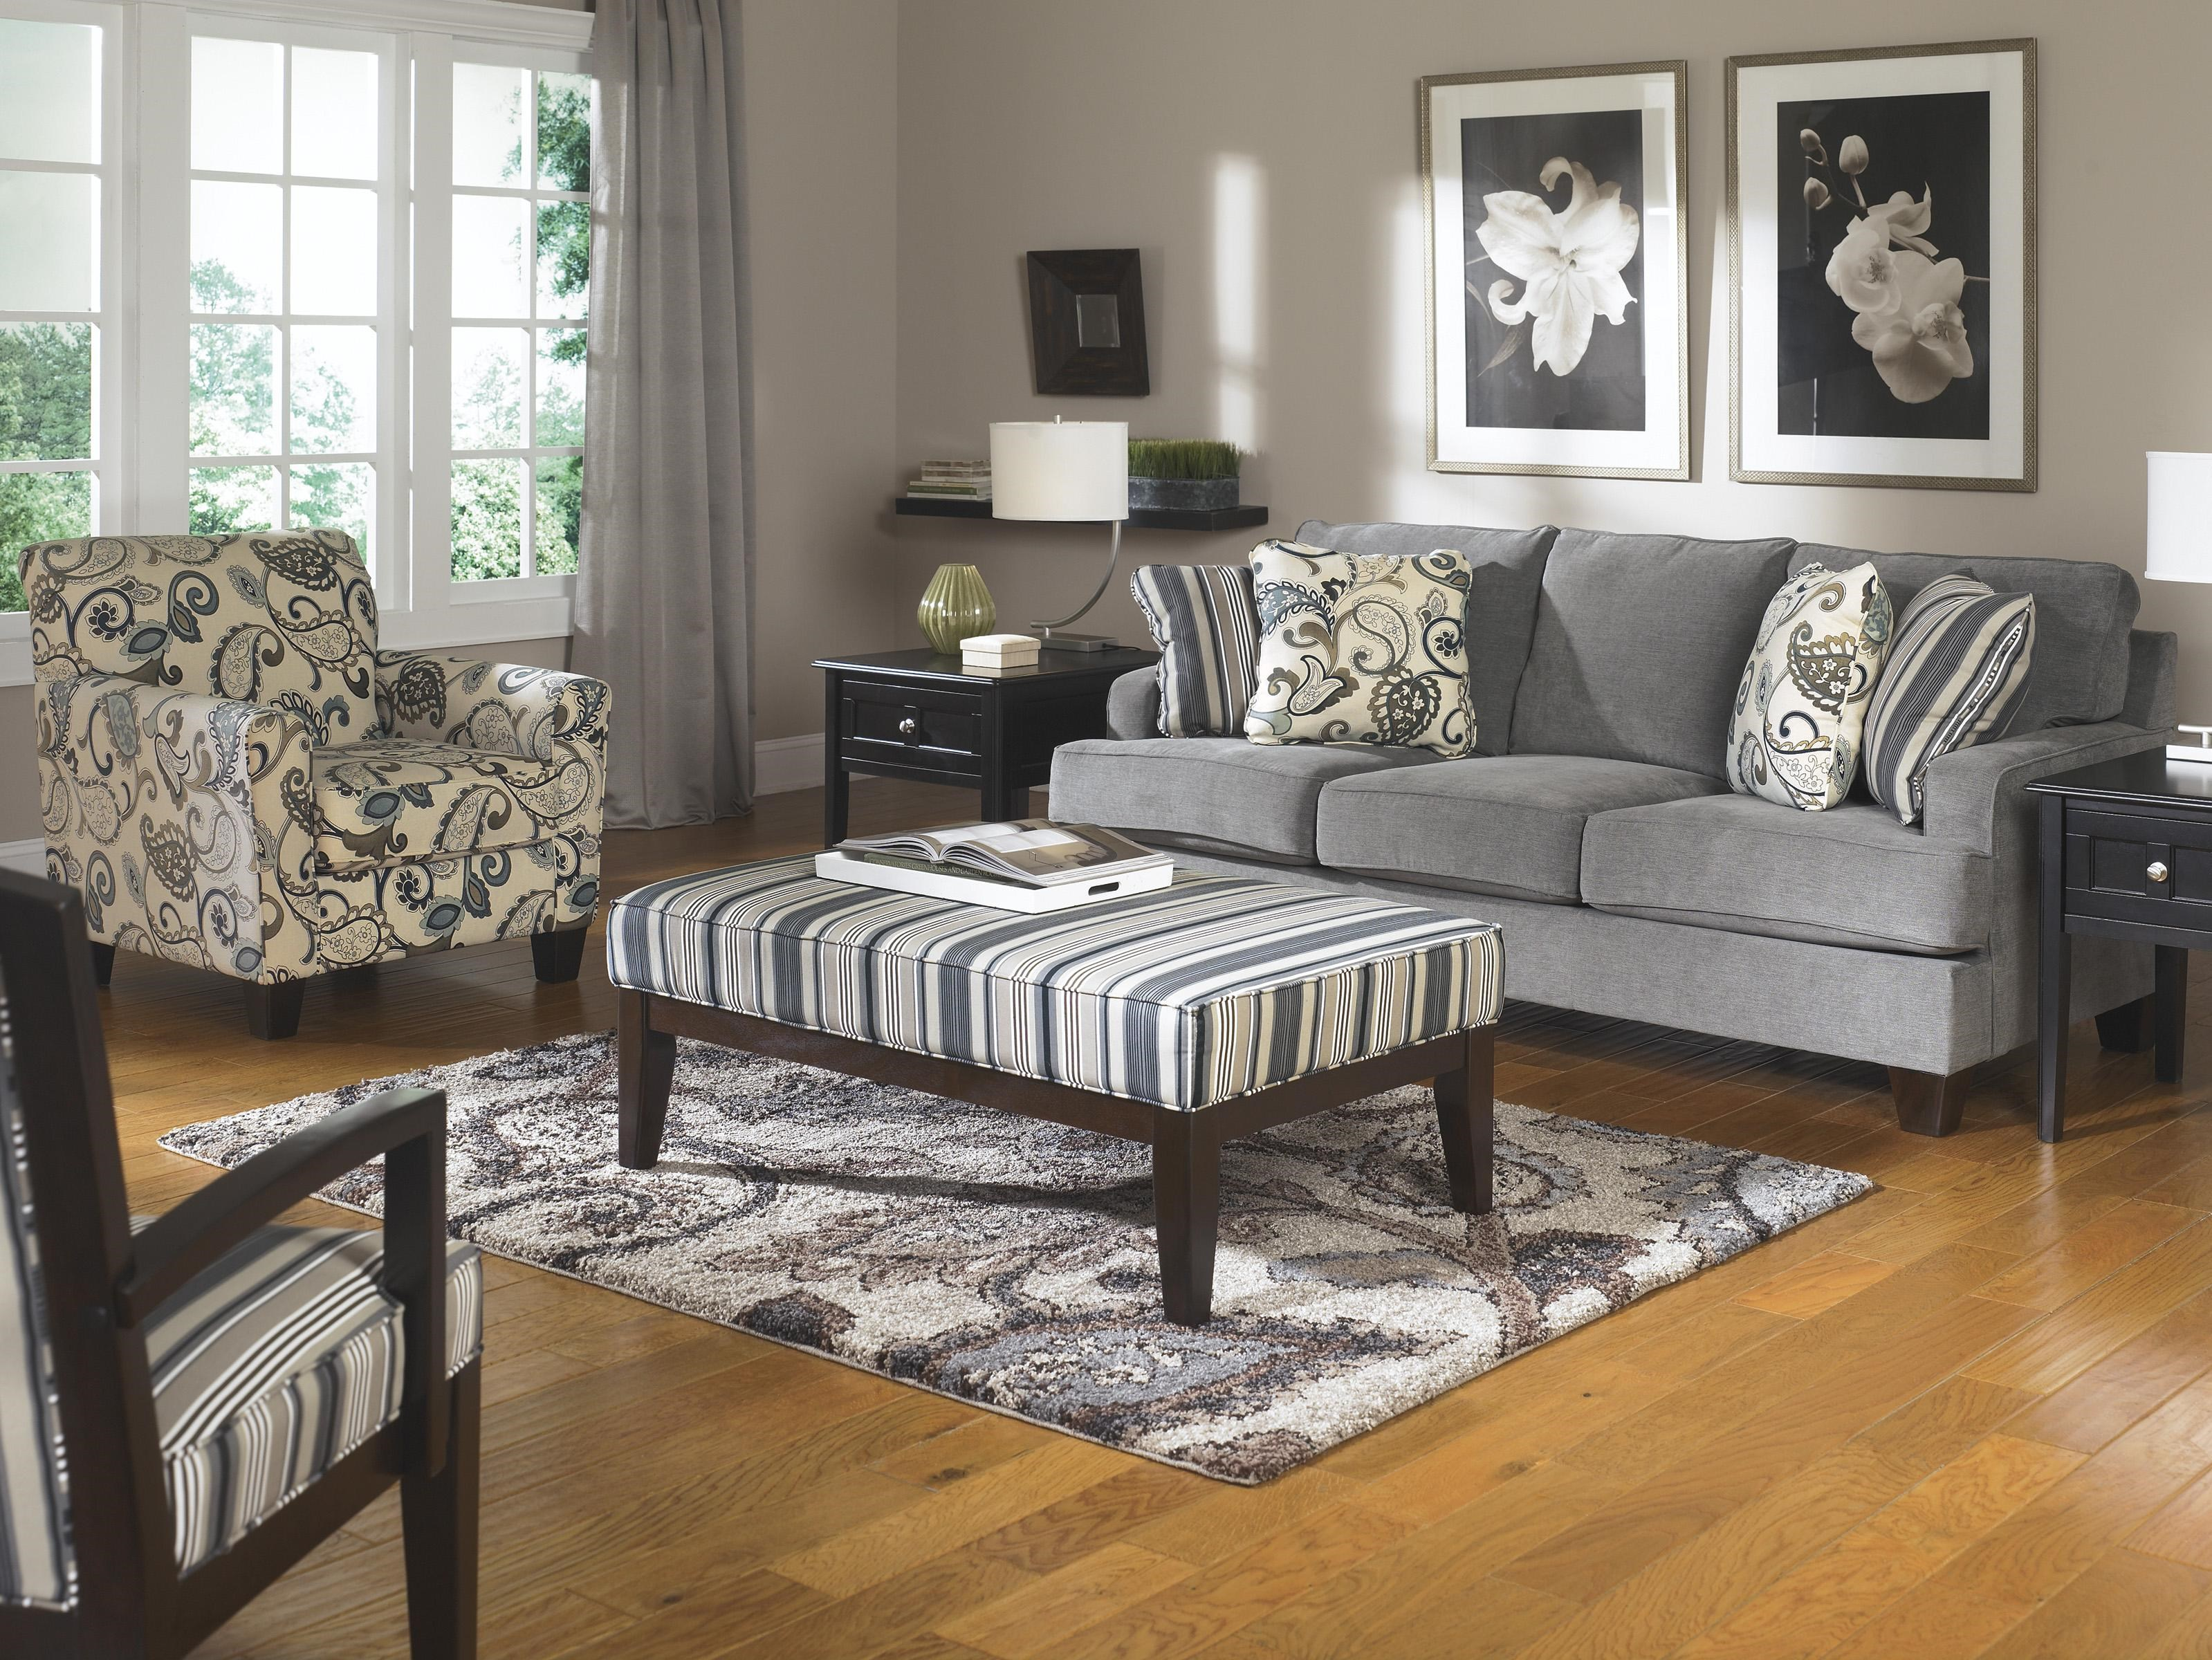 Ashley Furniture Yvette - Steel Stationary Living Room Group - Dream Home Furniture - Upholstery ...